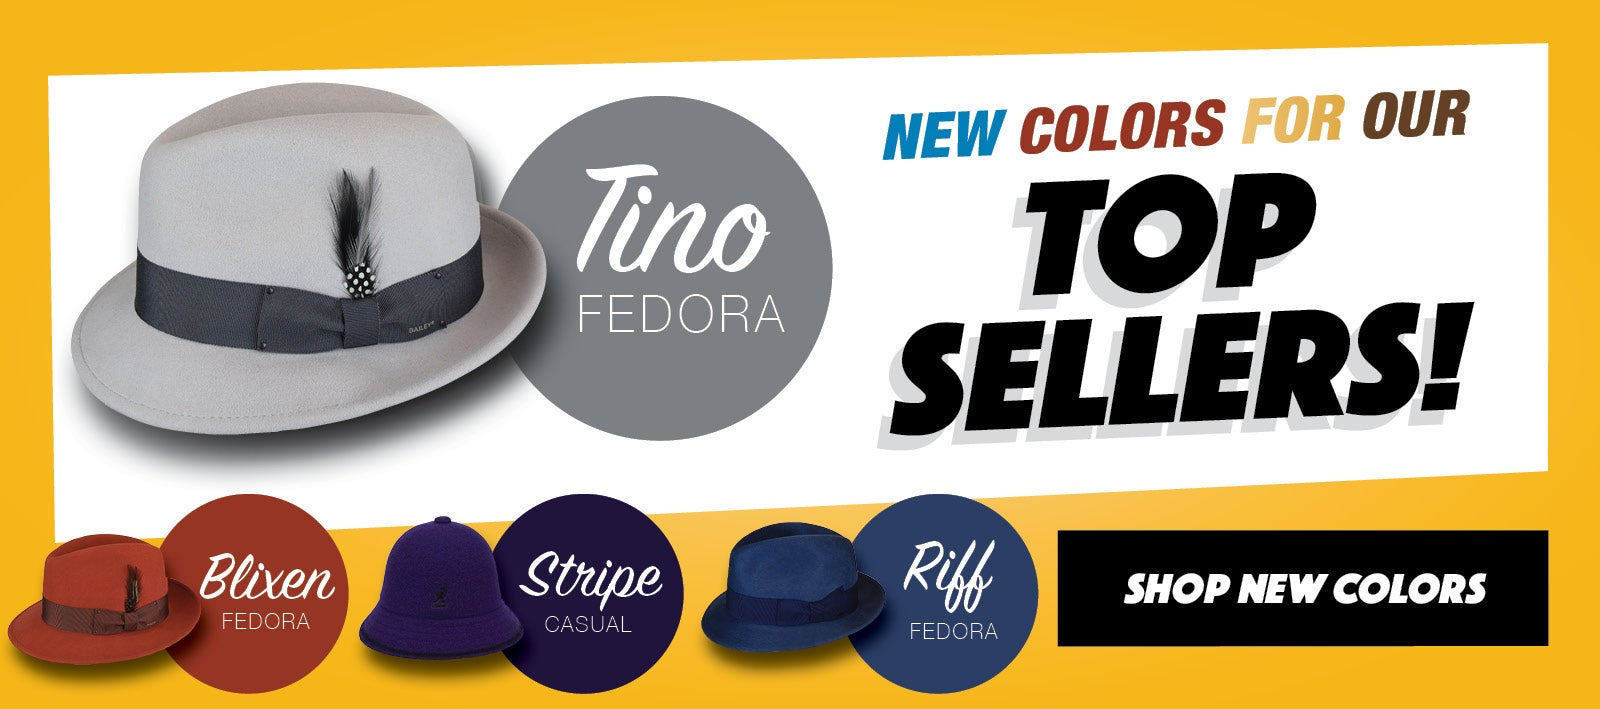 Shop New Colors In Top Sellers